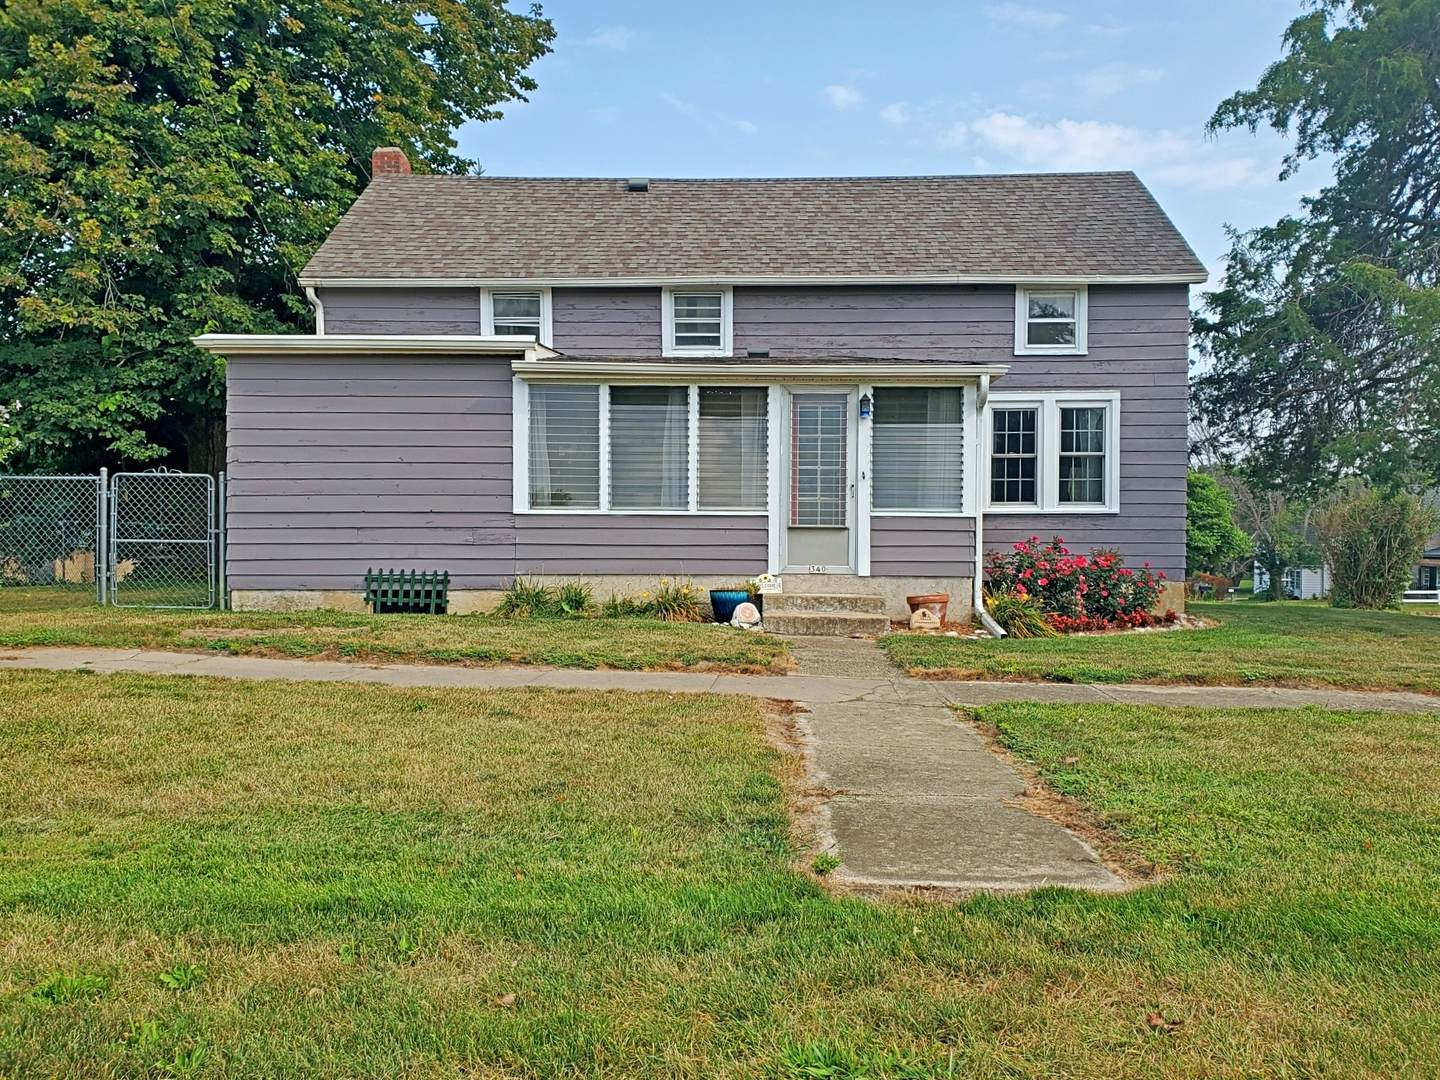 340 E Cook Street, Sheffield, IL 61361 (MLS #10830491) :: Jacqui Miller Homes